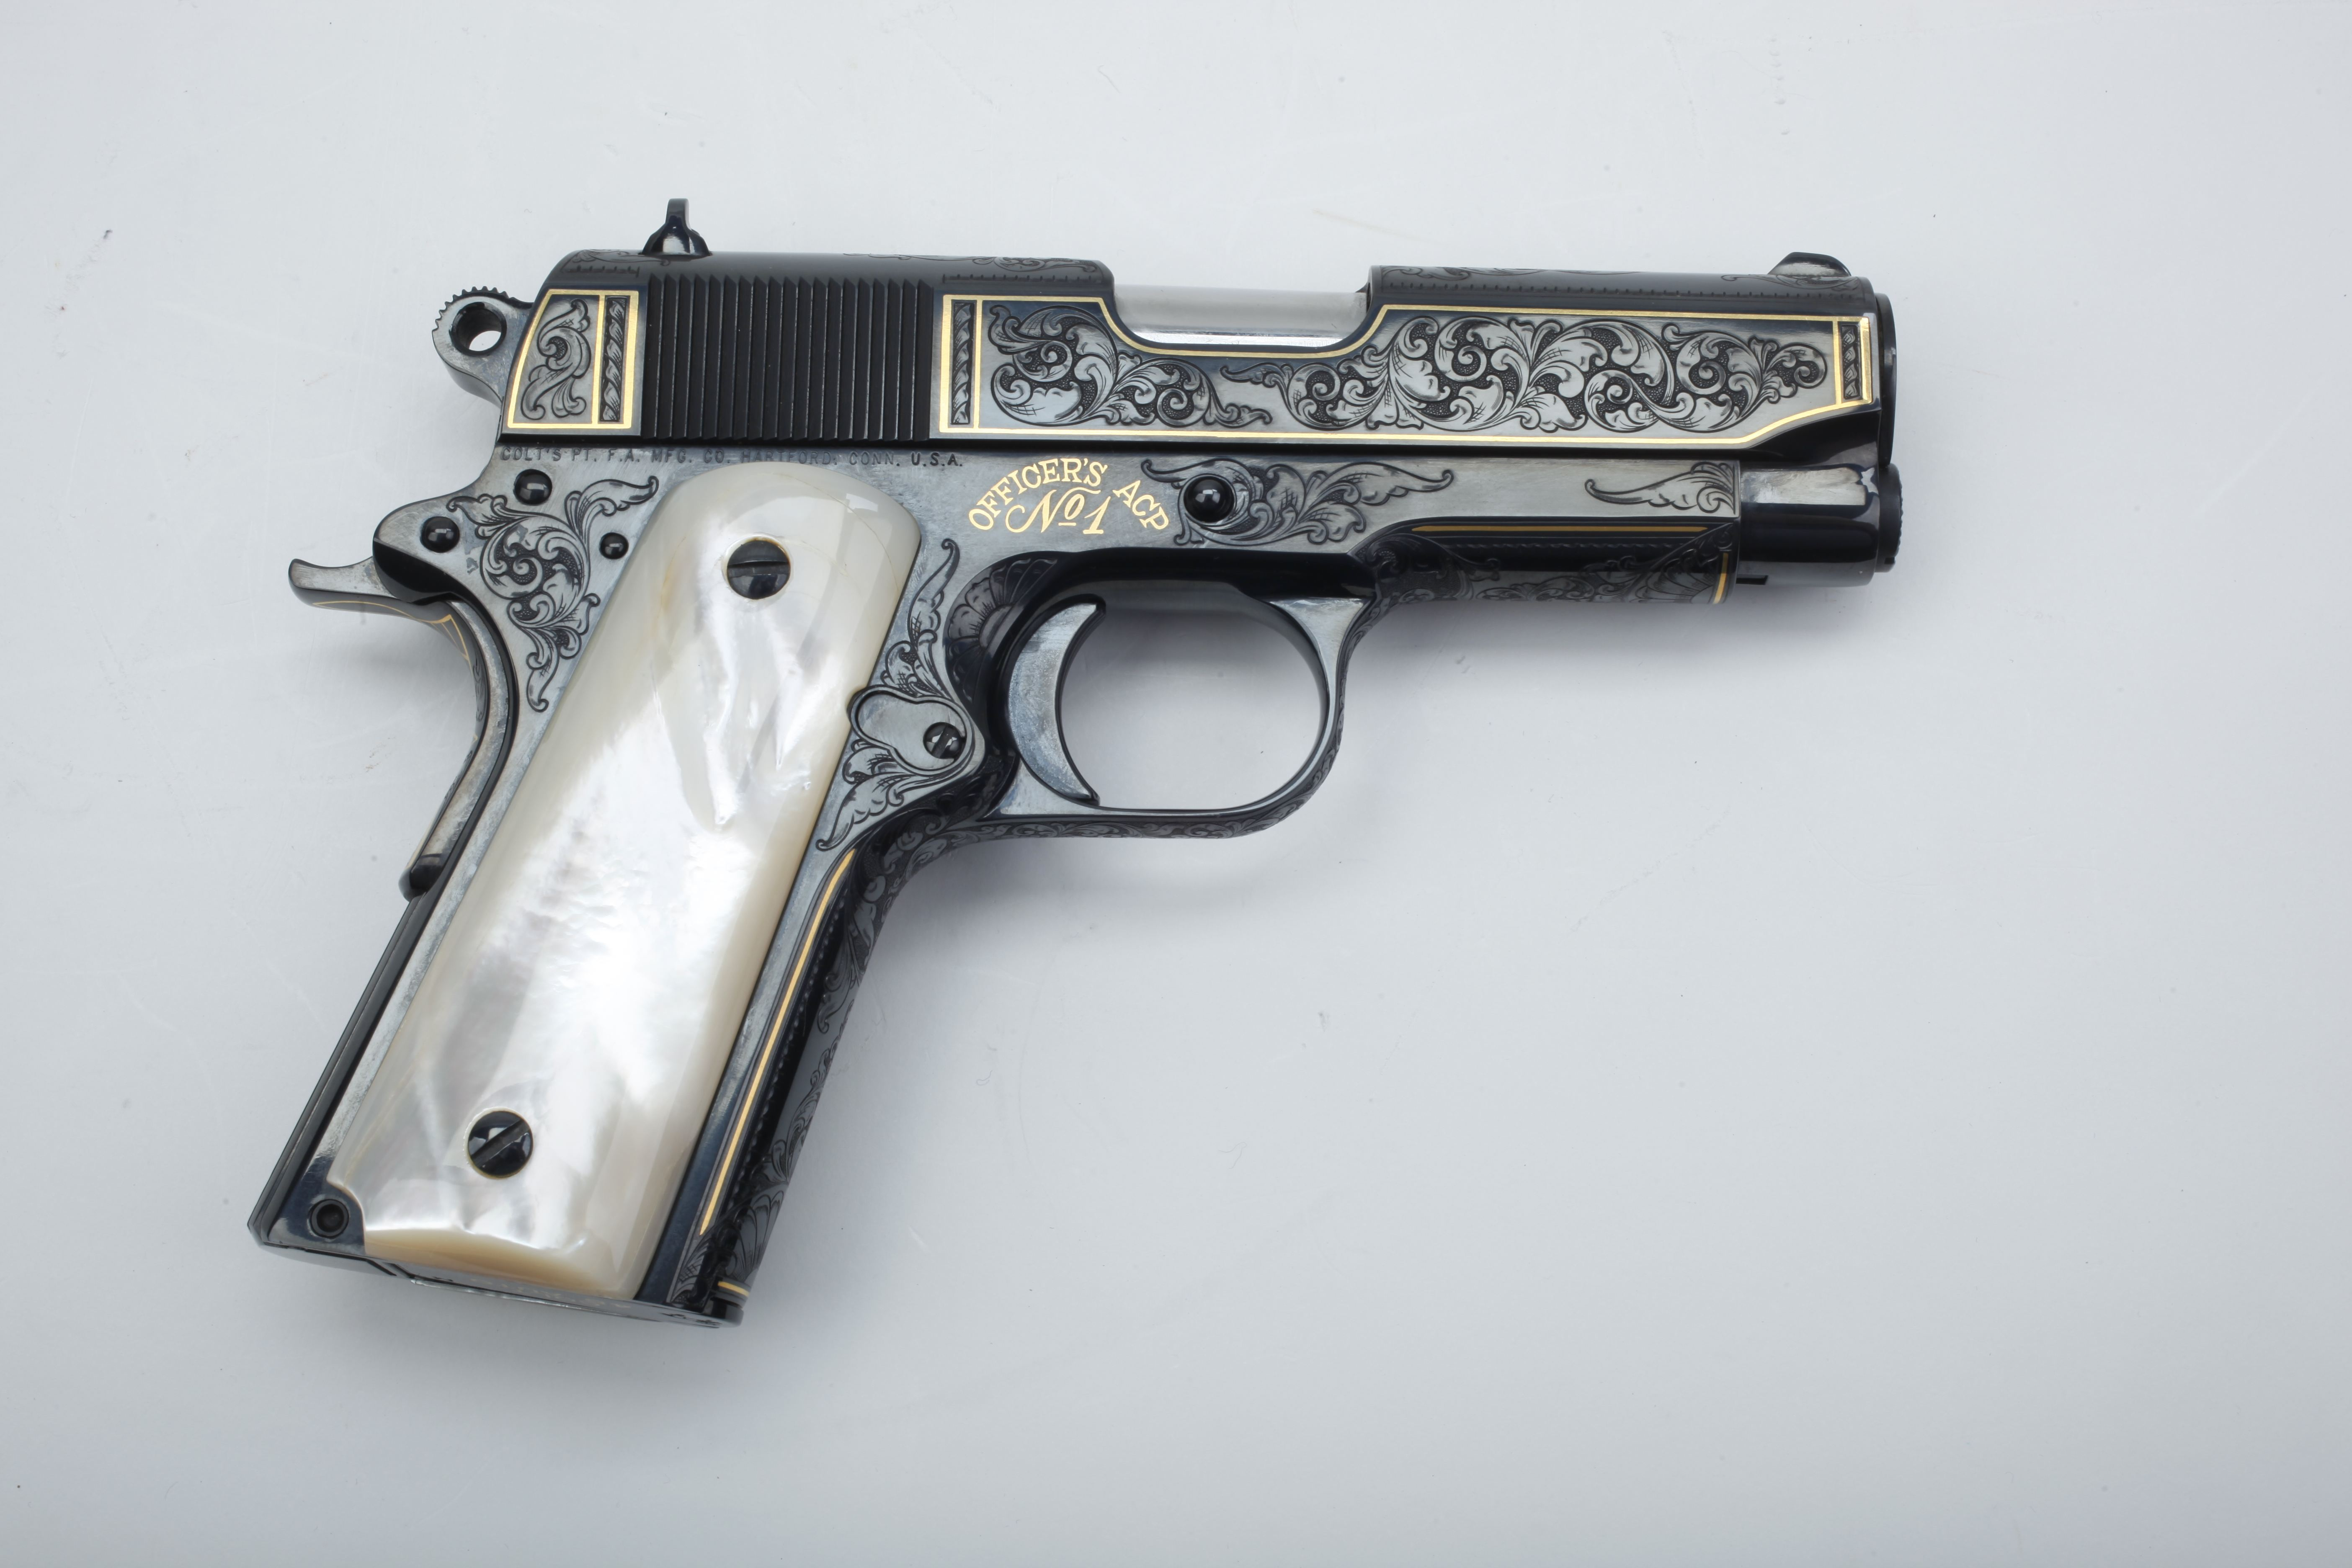 Colt Officers' Pistol (1)